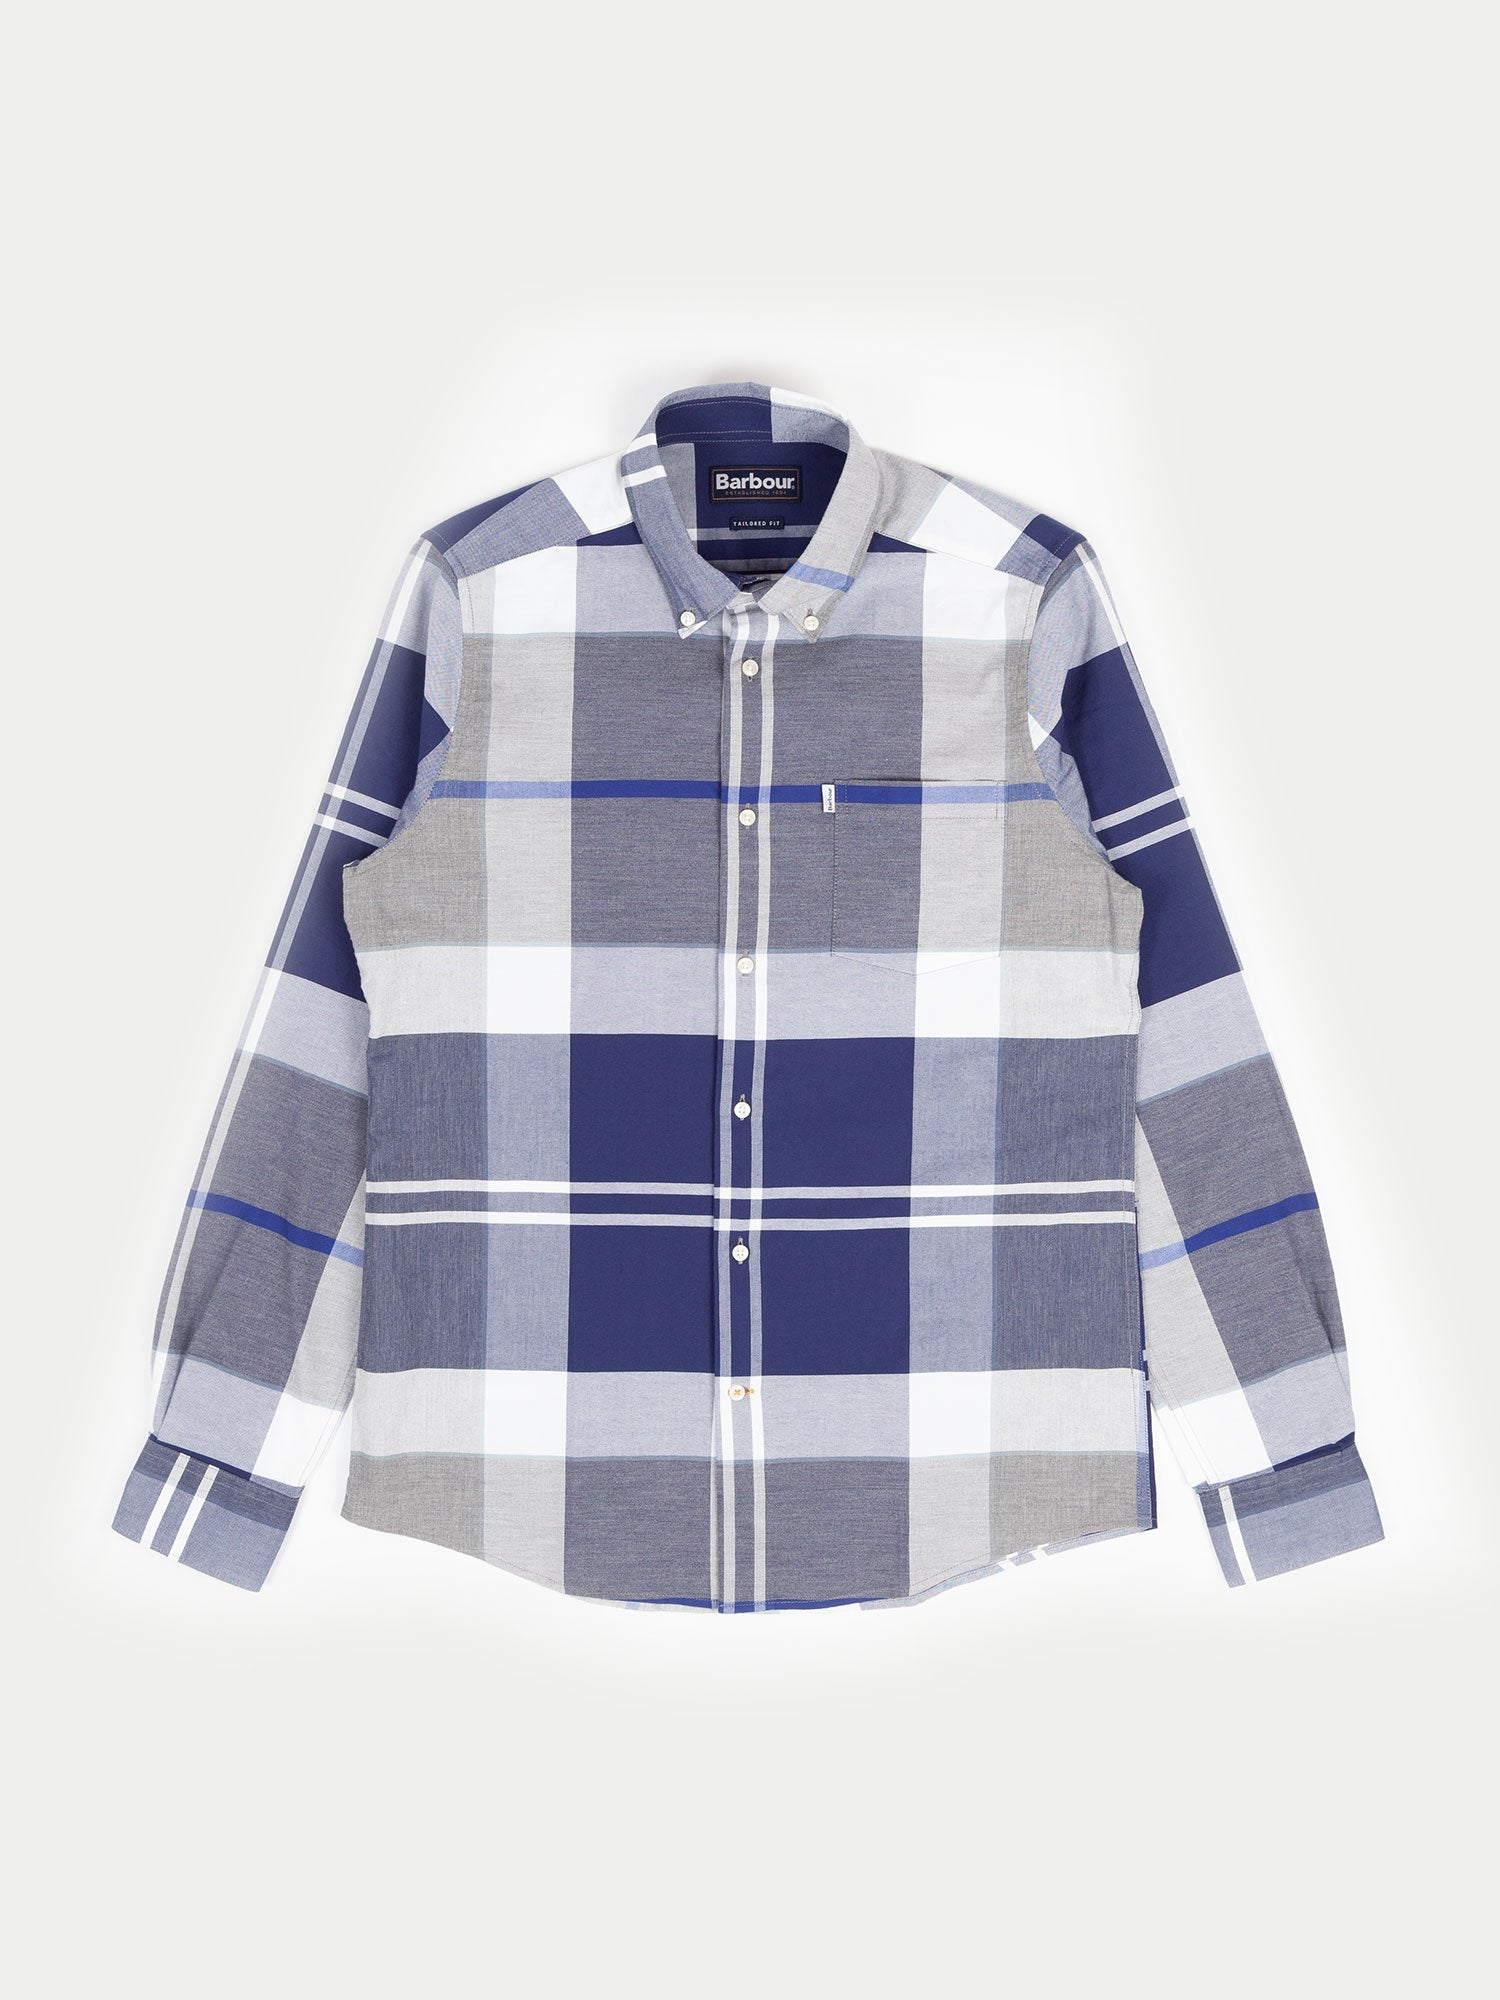 Barbour Brothwell Shirt (Grey)